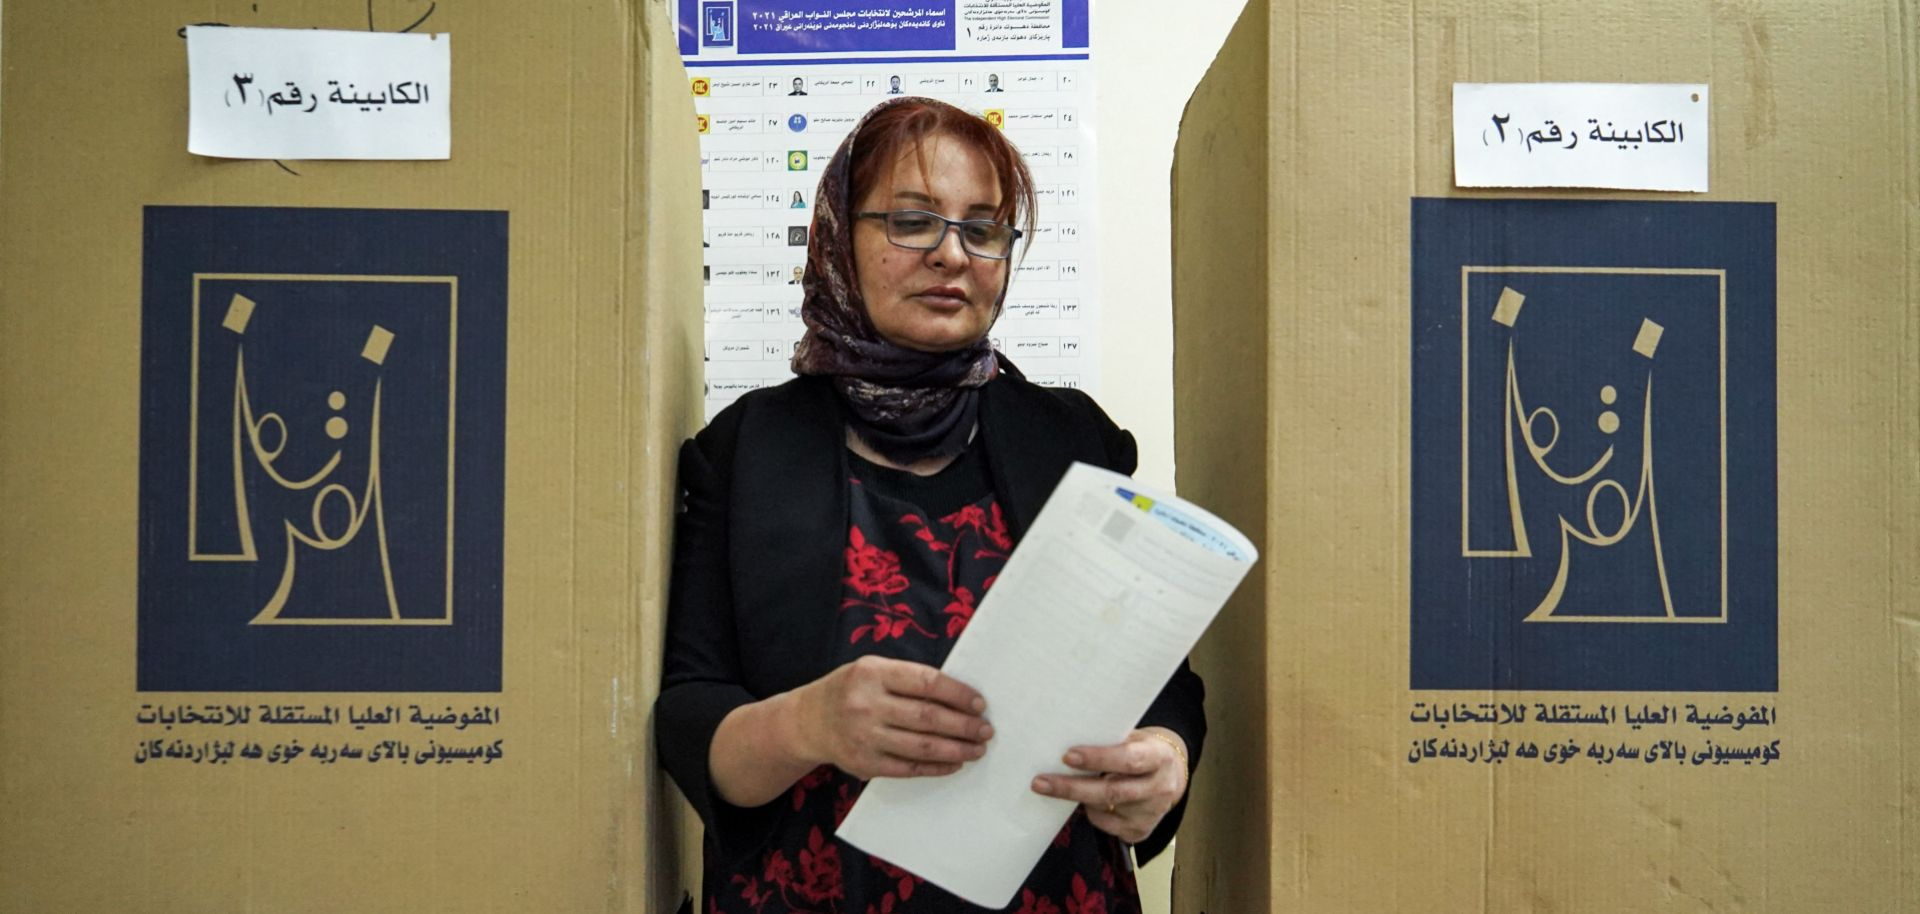 A woman walks to cast her ballot in Iraq's parliamentary election at a polling station in Dohuk on Oct. 10, 2021.